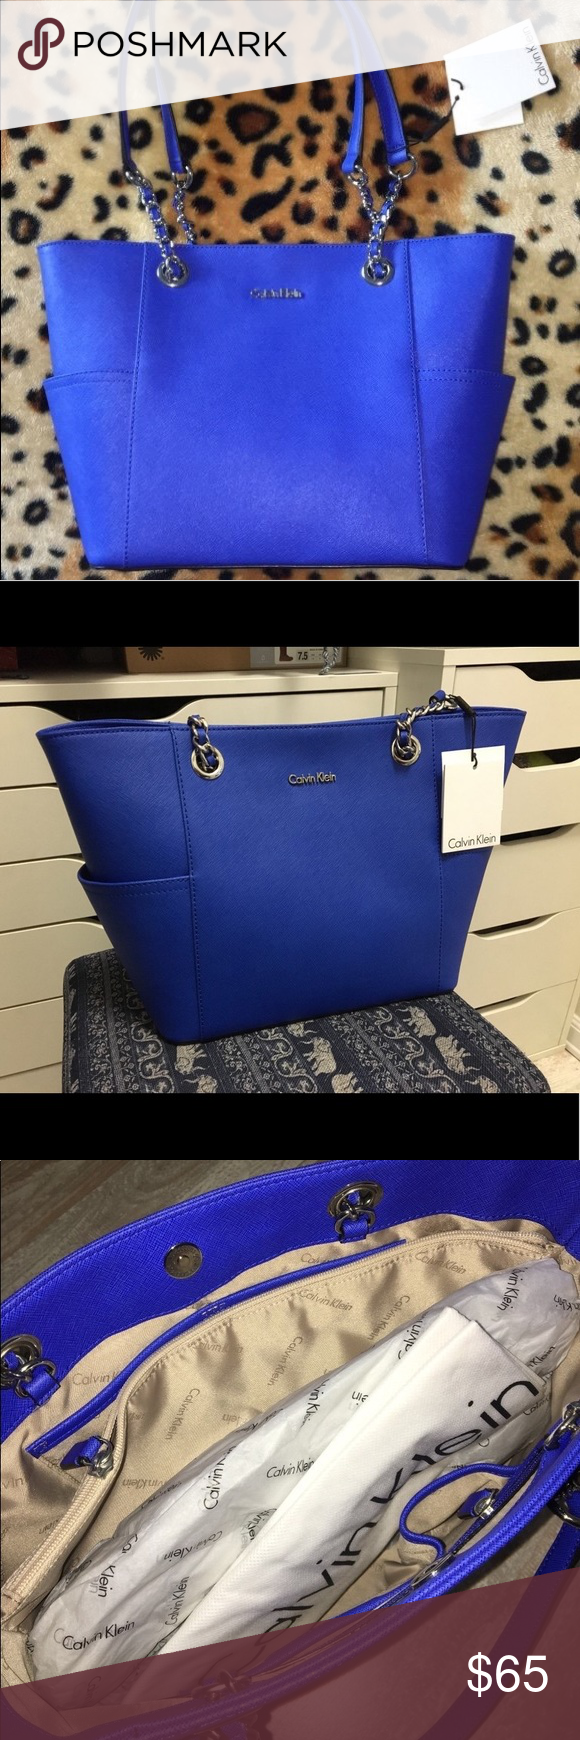 609773145e6b Calvin Klein Blue Hand Bag Original Calvin Klein, never used. Original  price was about $100. Blue hand bag. Calvin Klein Bags